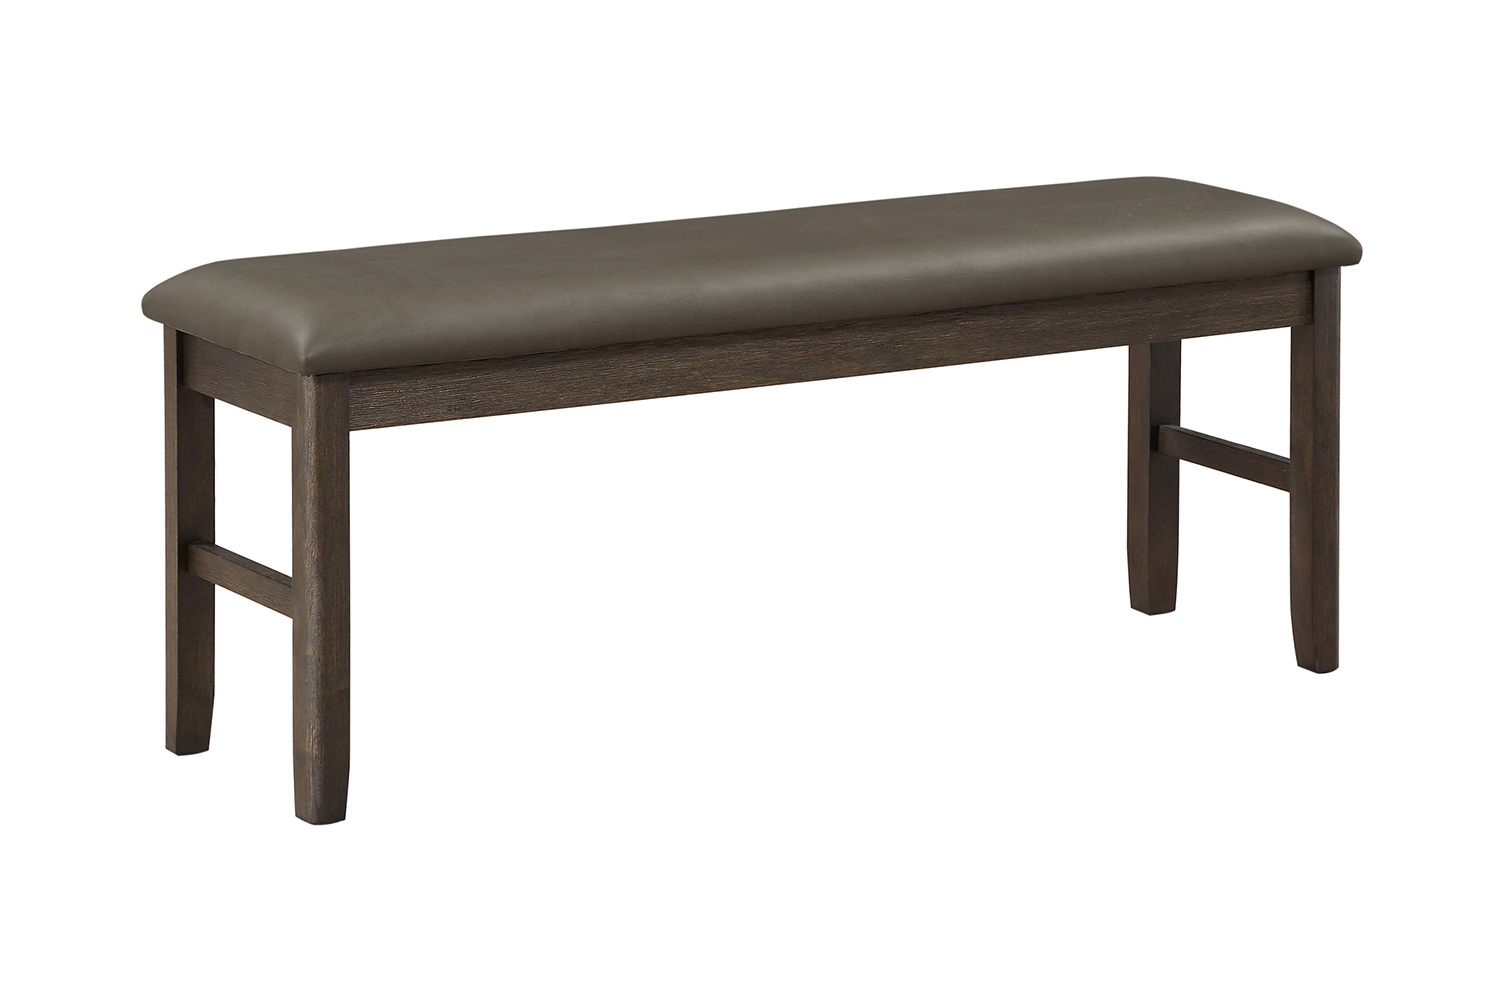 Homelegance Brim Bench - Brown Cherry